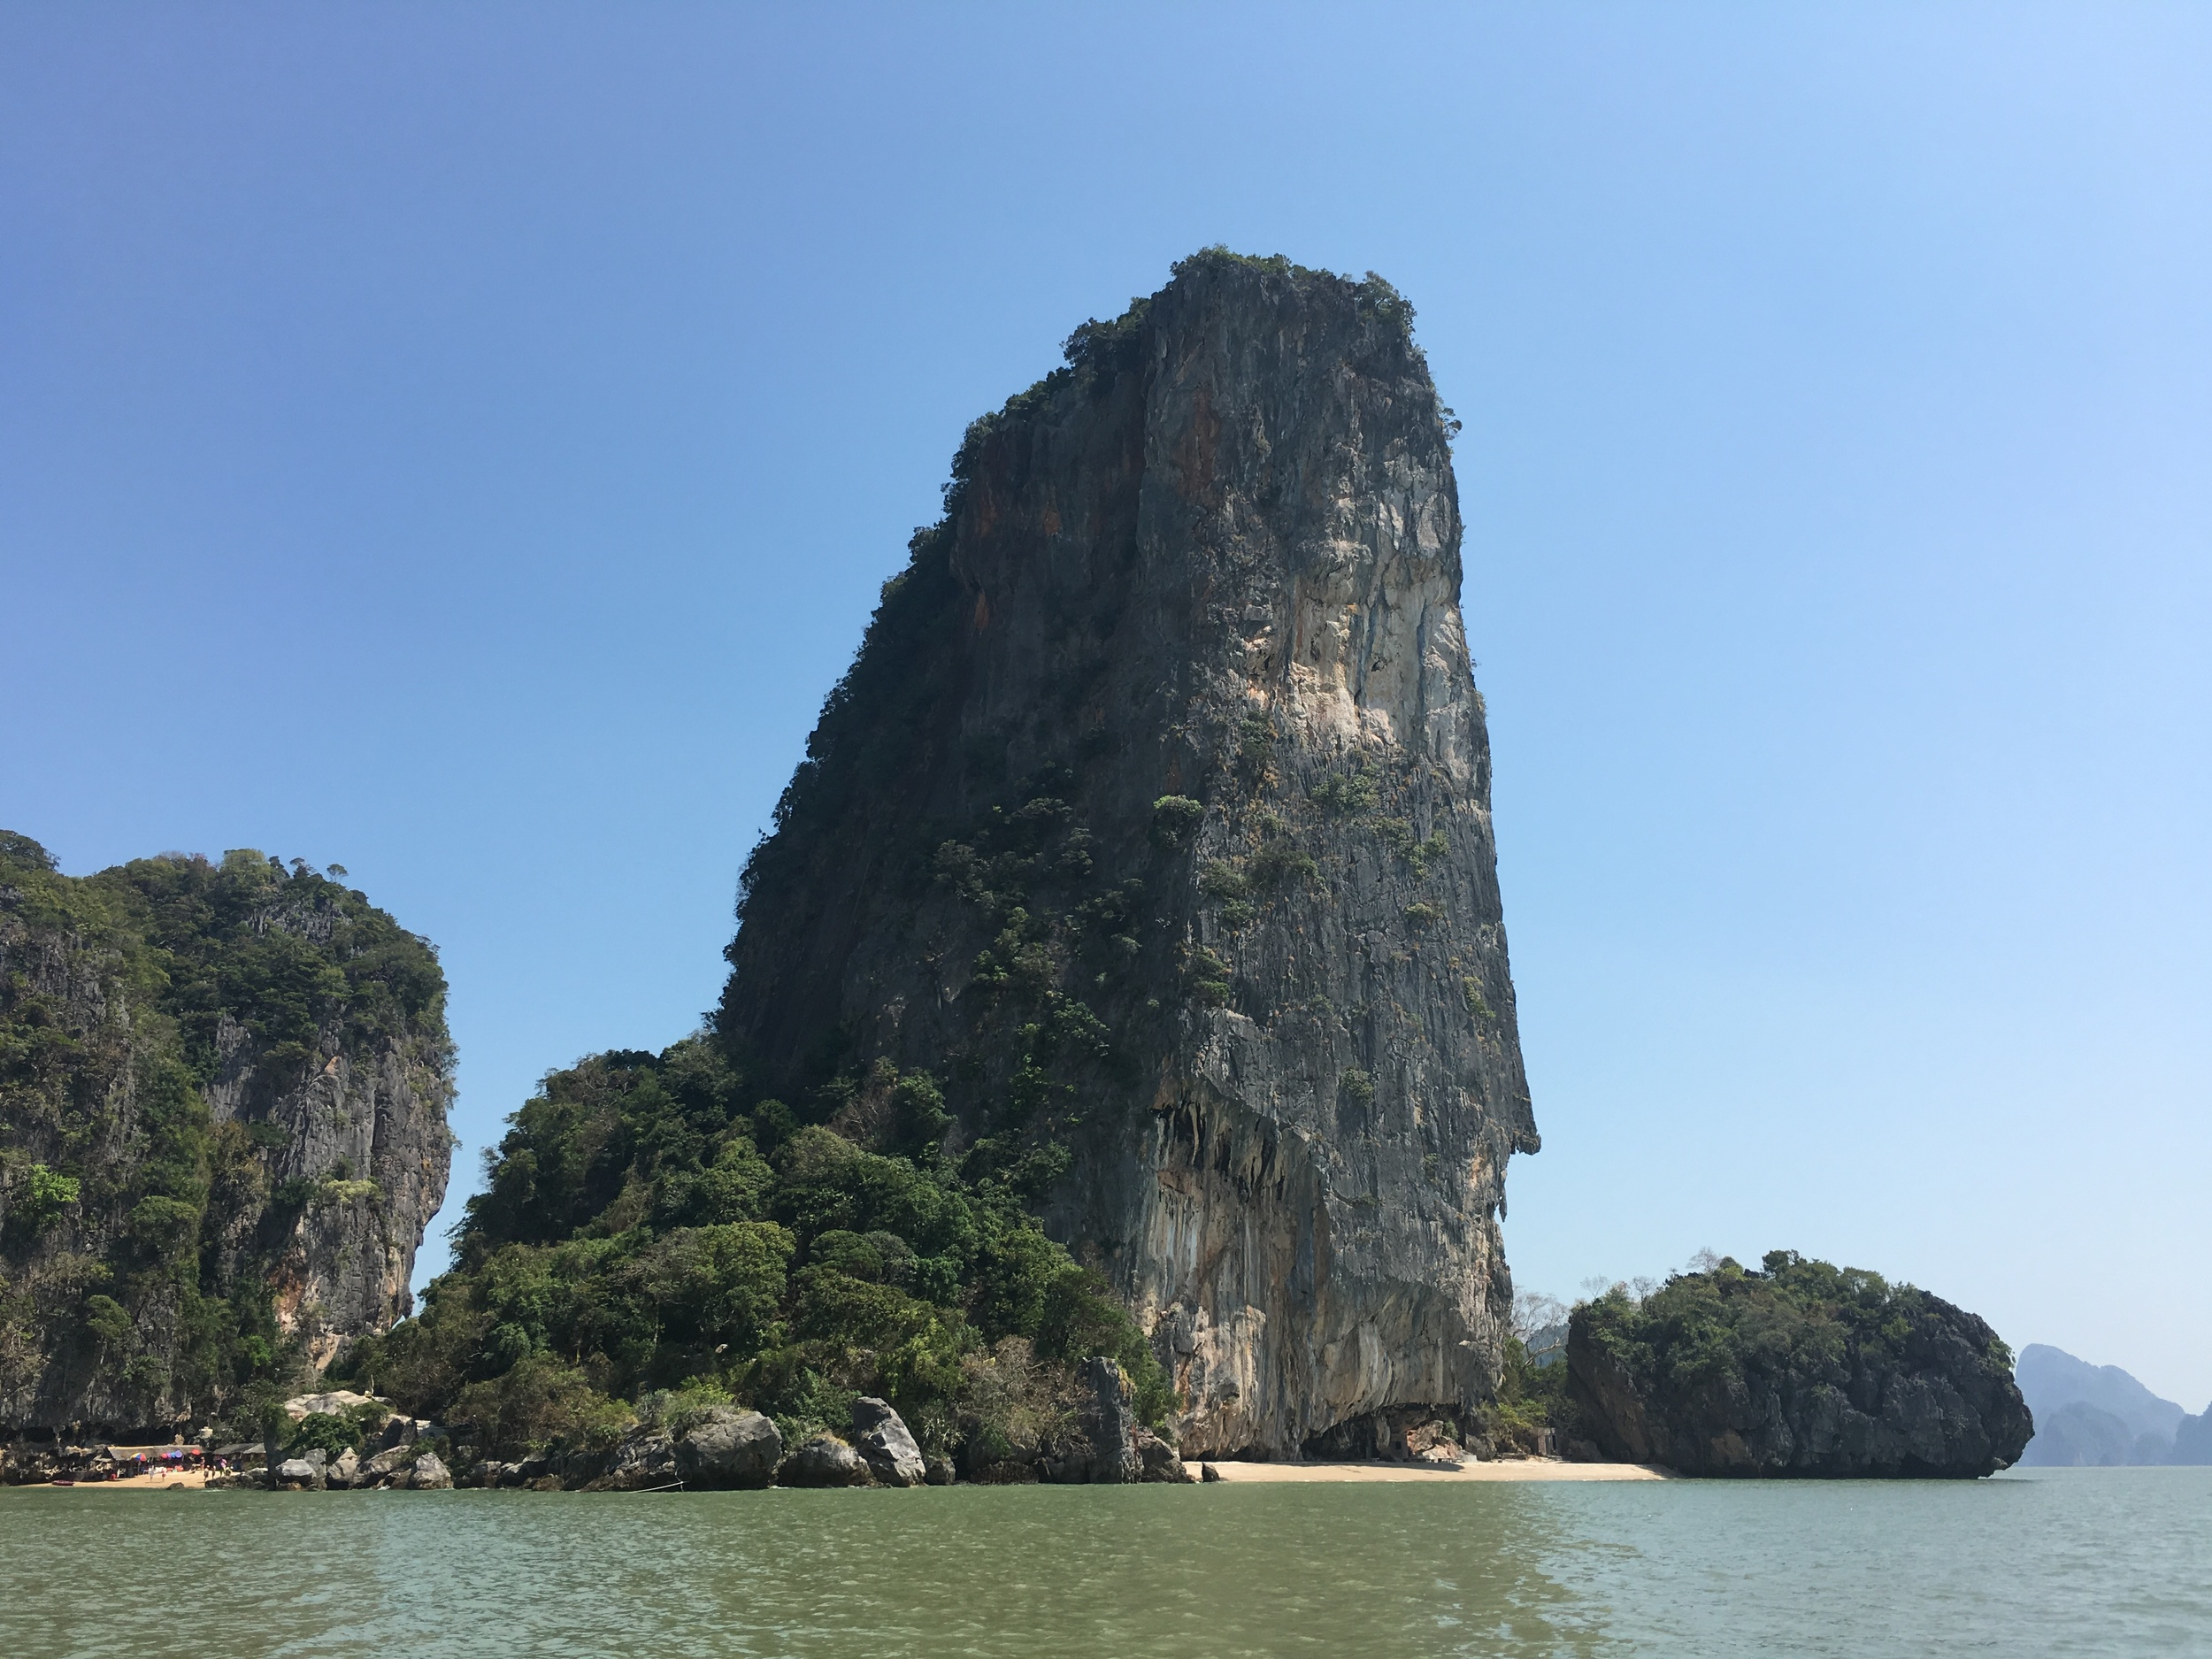 One of the natural beauties of James Bond Island.